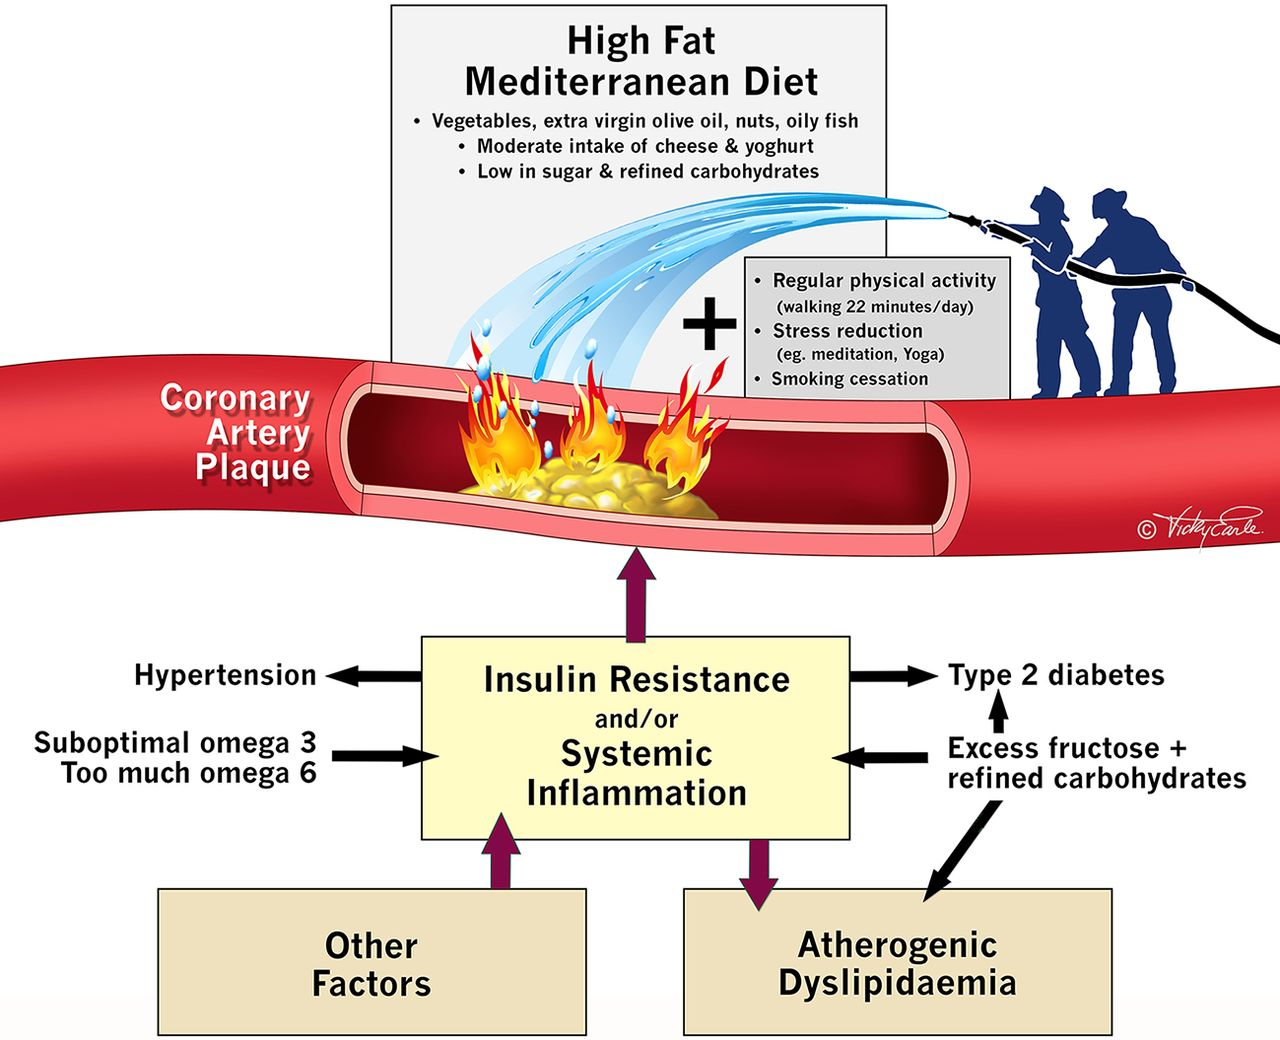 Saturated fat does not clog the arteries: coronary heart disease is